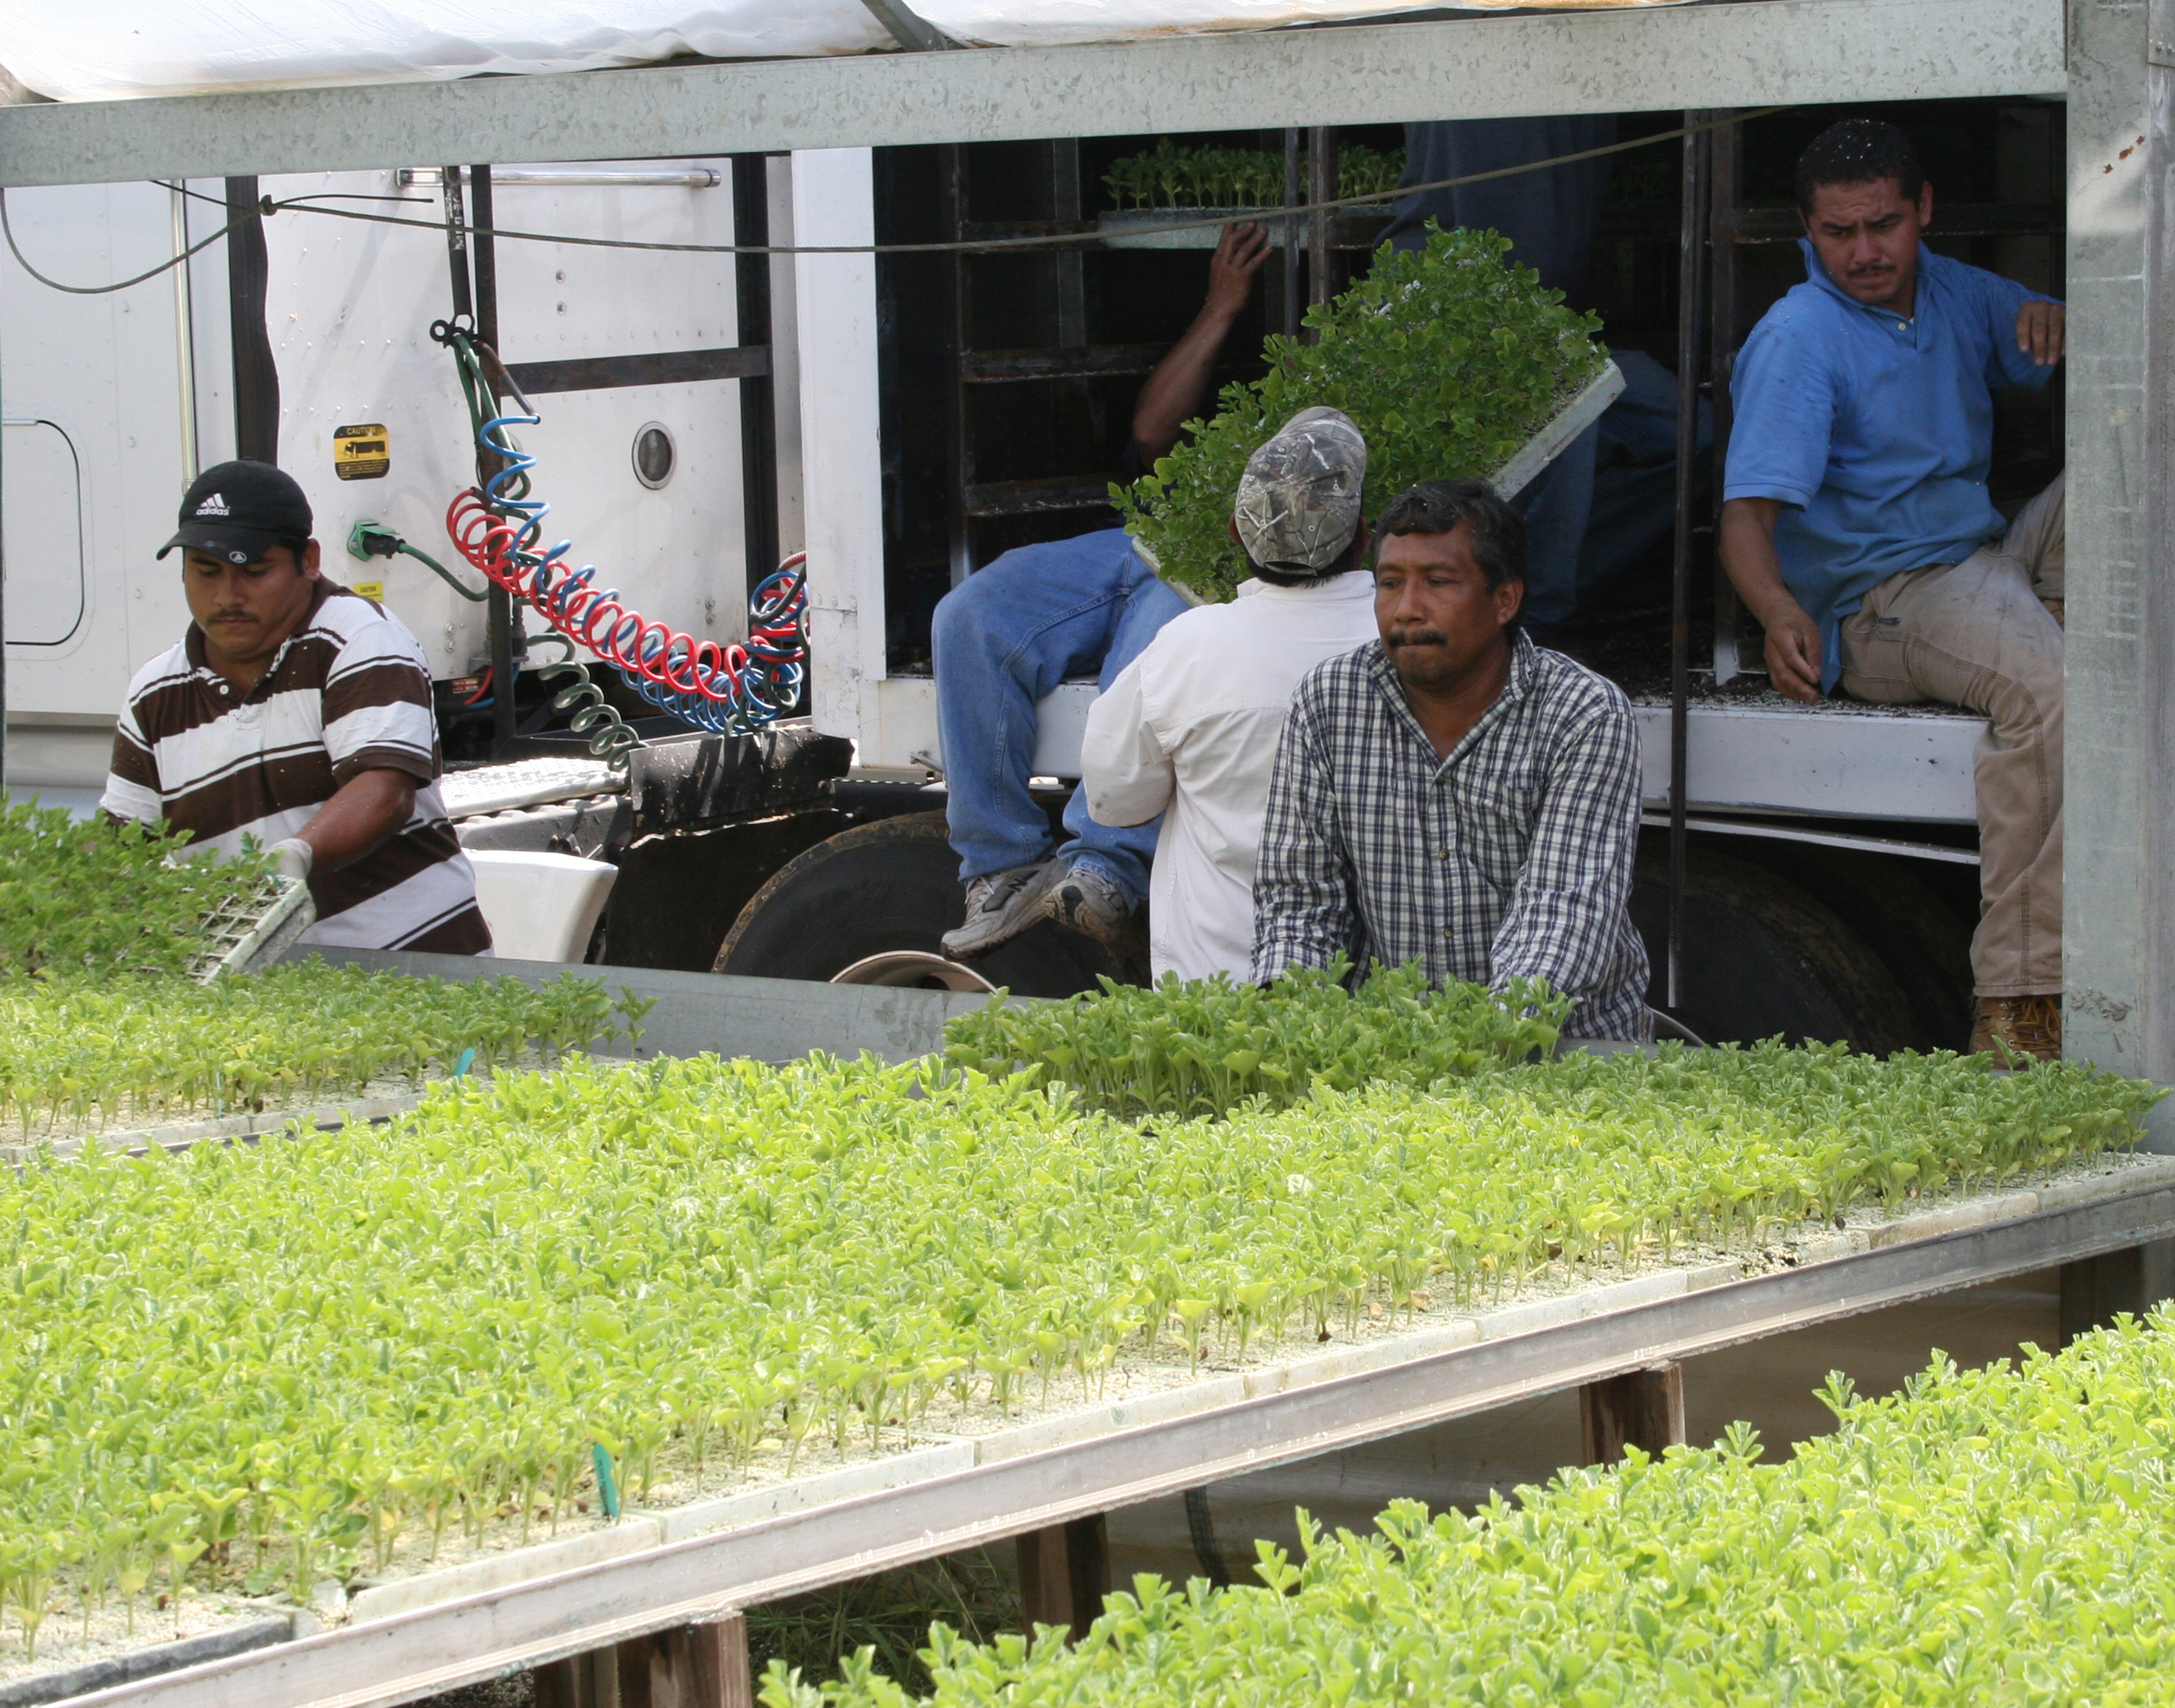 Farm workers load trays filled with vegetable transplants onto a truck at a greenhouse in Tifton, Ga.